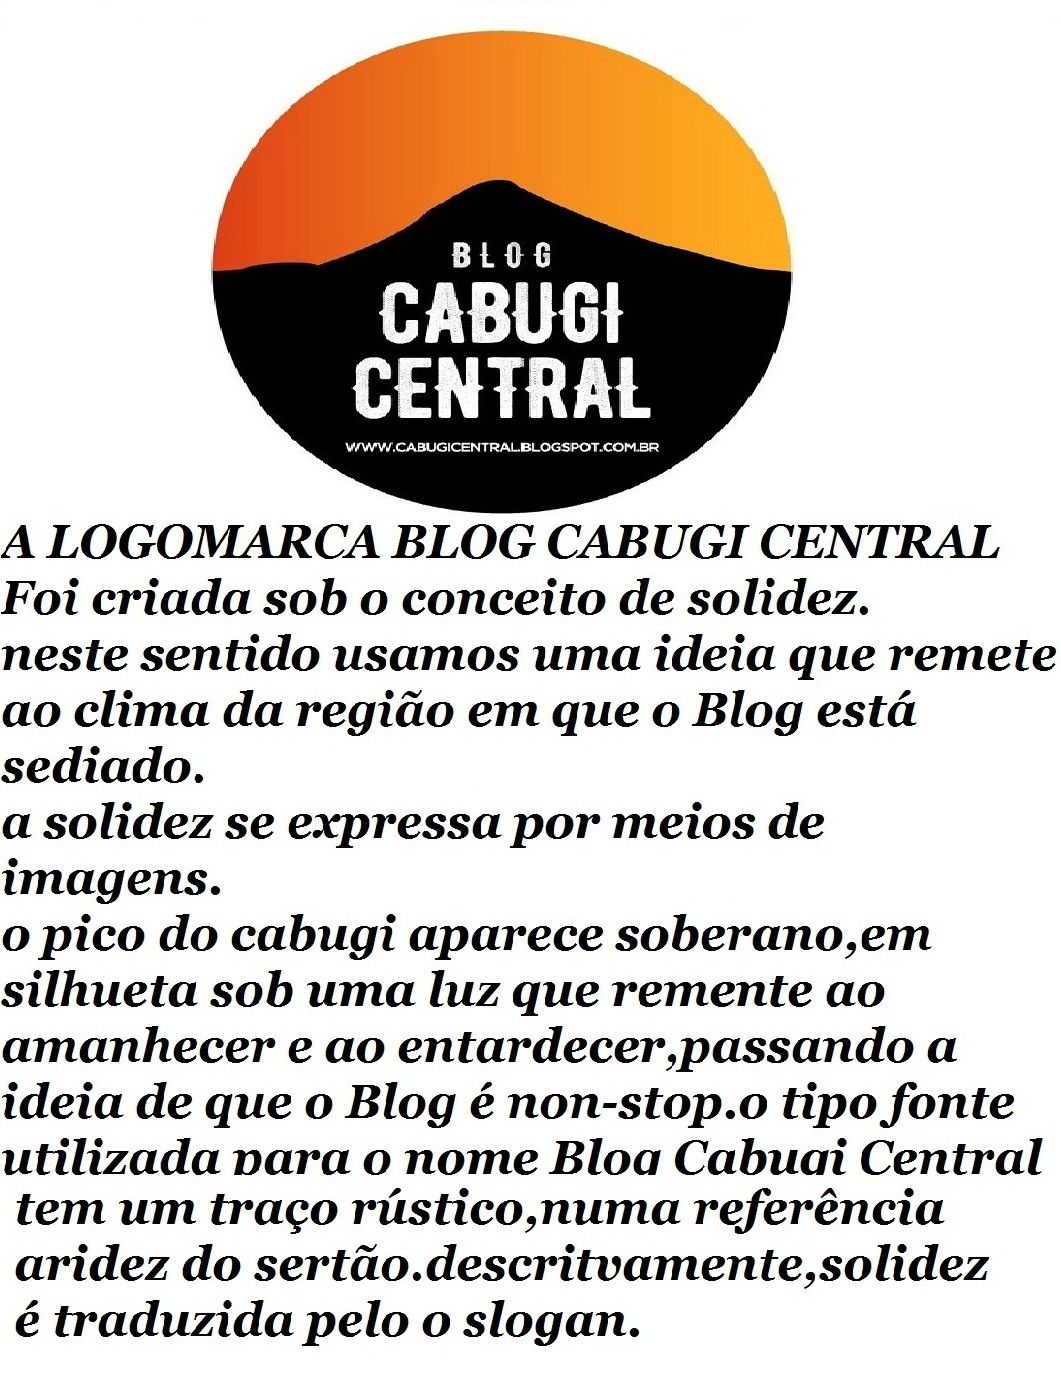 LOG BLOG CABUGI CENTRAL